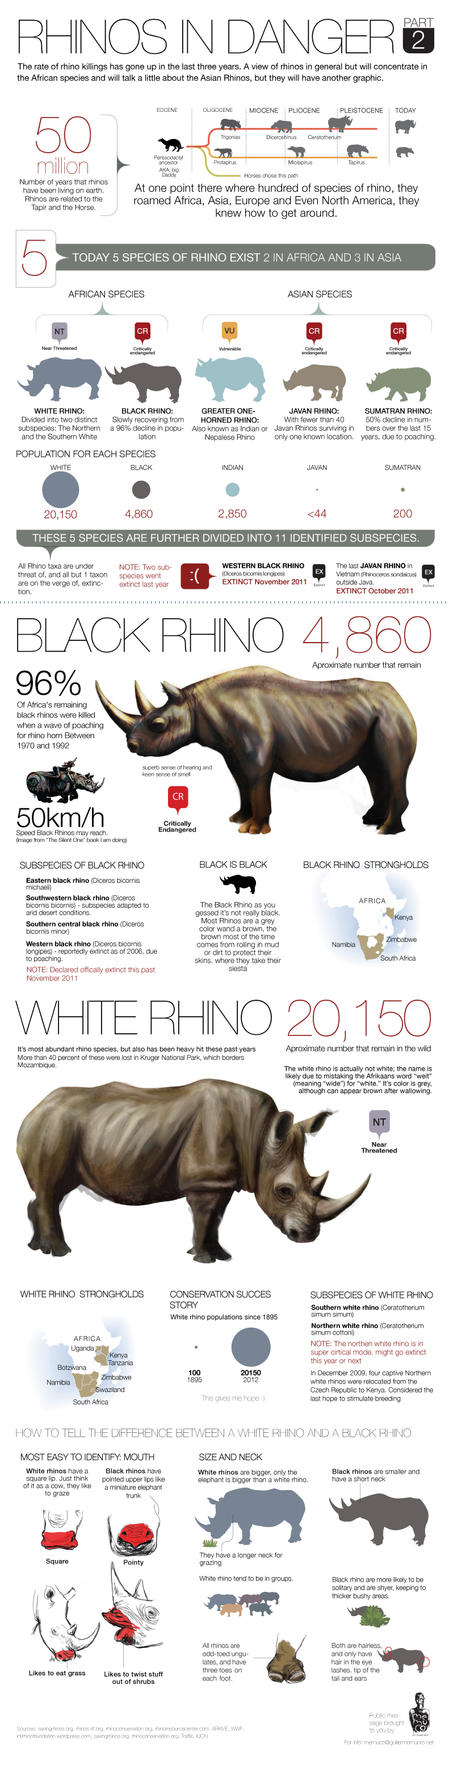 RHINO POACHING part2 by memuco